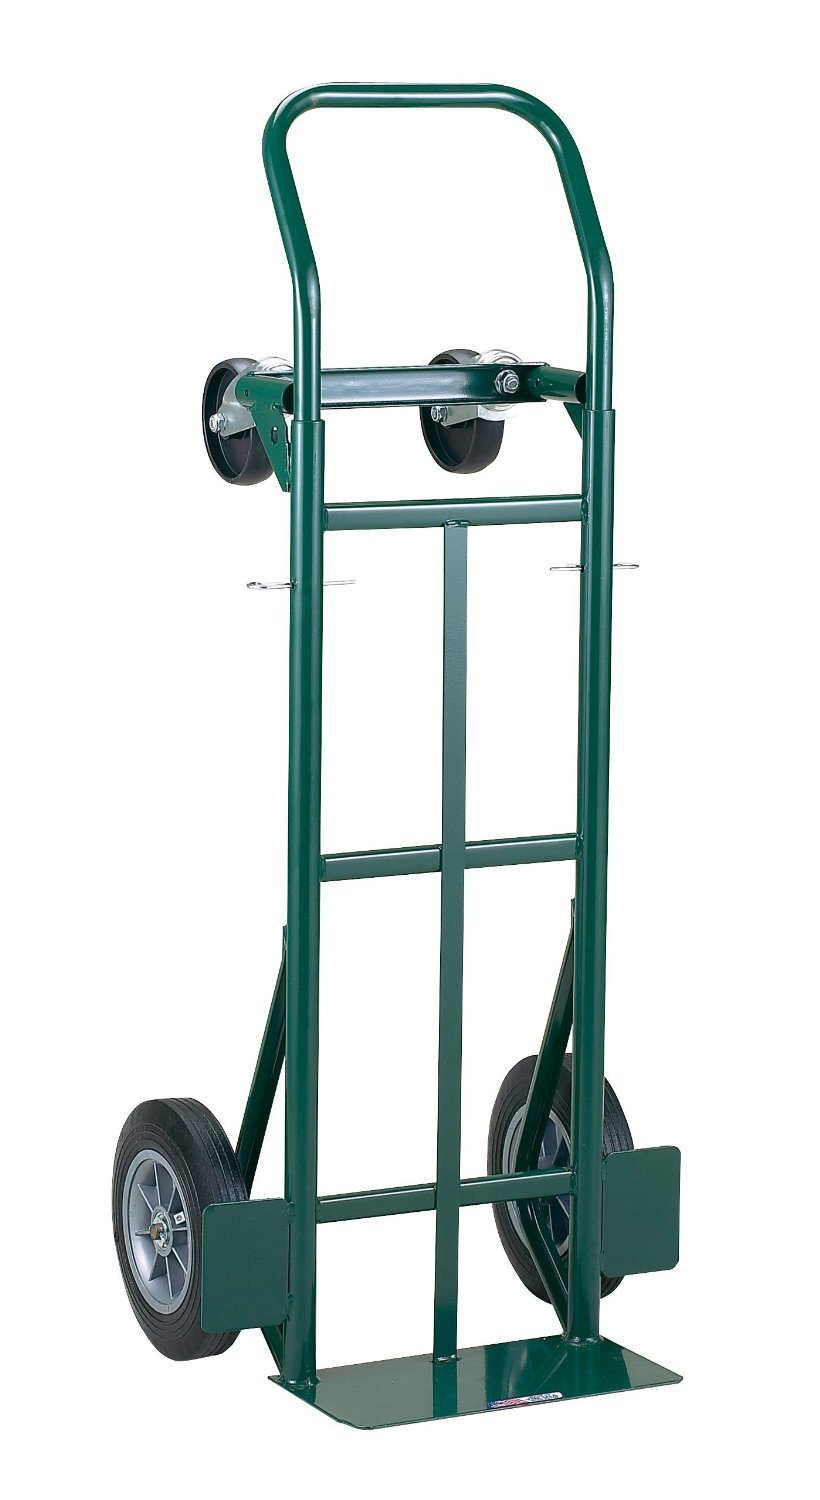 "Harper Trucks 700 lb Capacity Super-Steel Convertible Hand Truck, Dual Purpose 2 Wheel Dolly and 4 Wheel Cart with 10"" Flat-Free Solid Rubber Wheels"